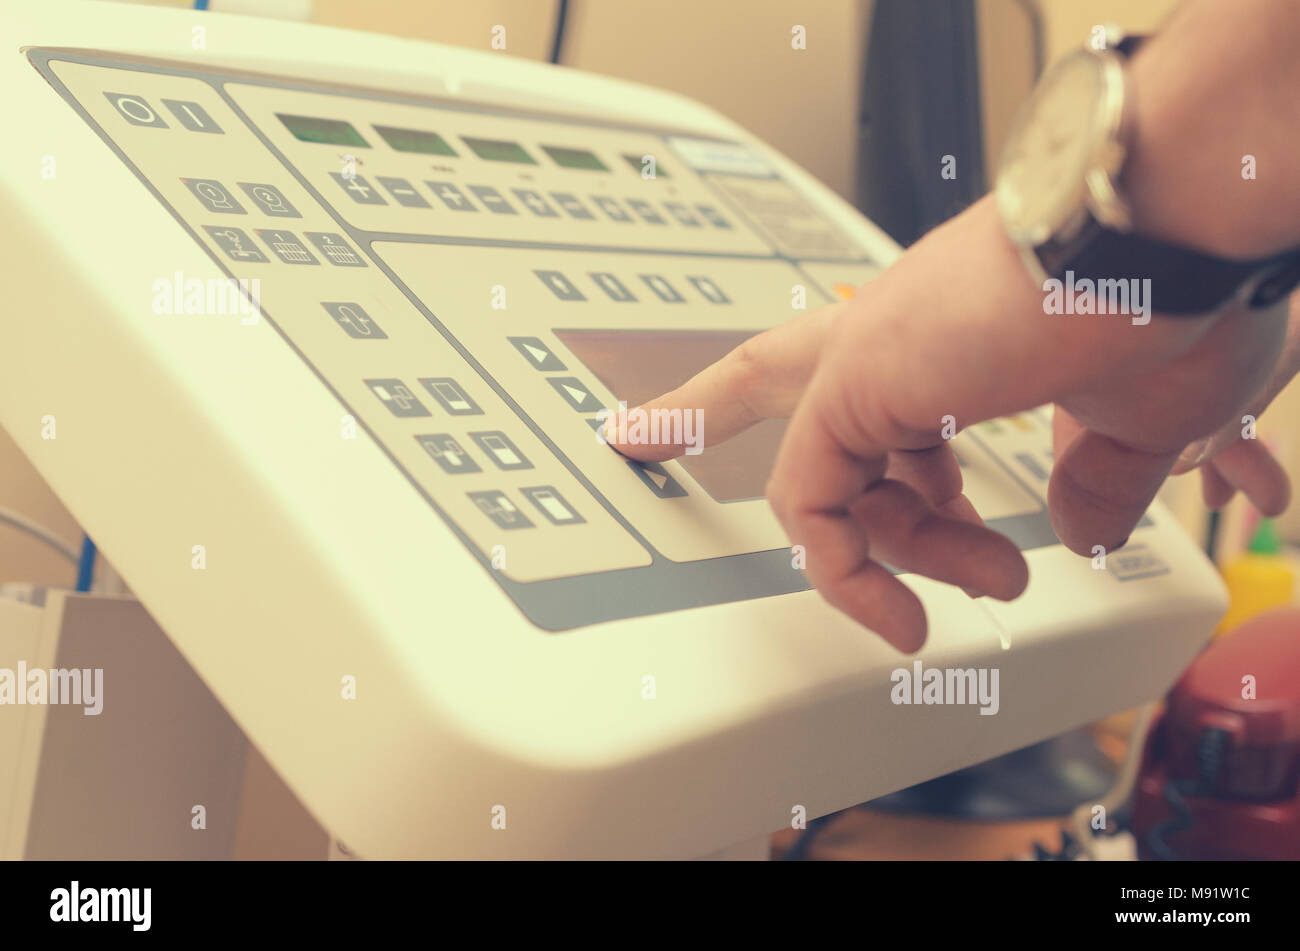 The radiologist presses the button of the control panel to produce an X-ray image. Stock Photo